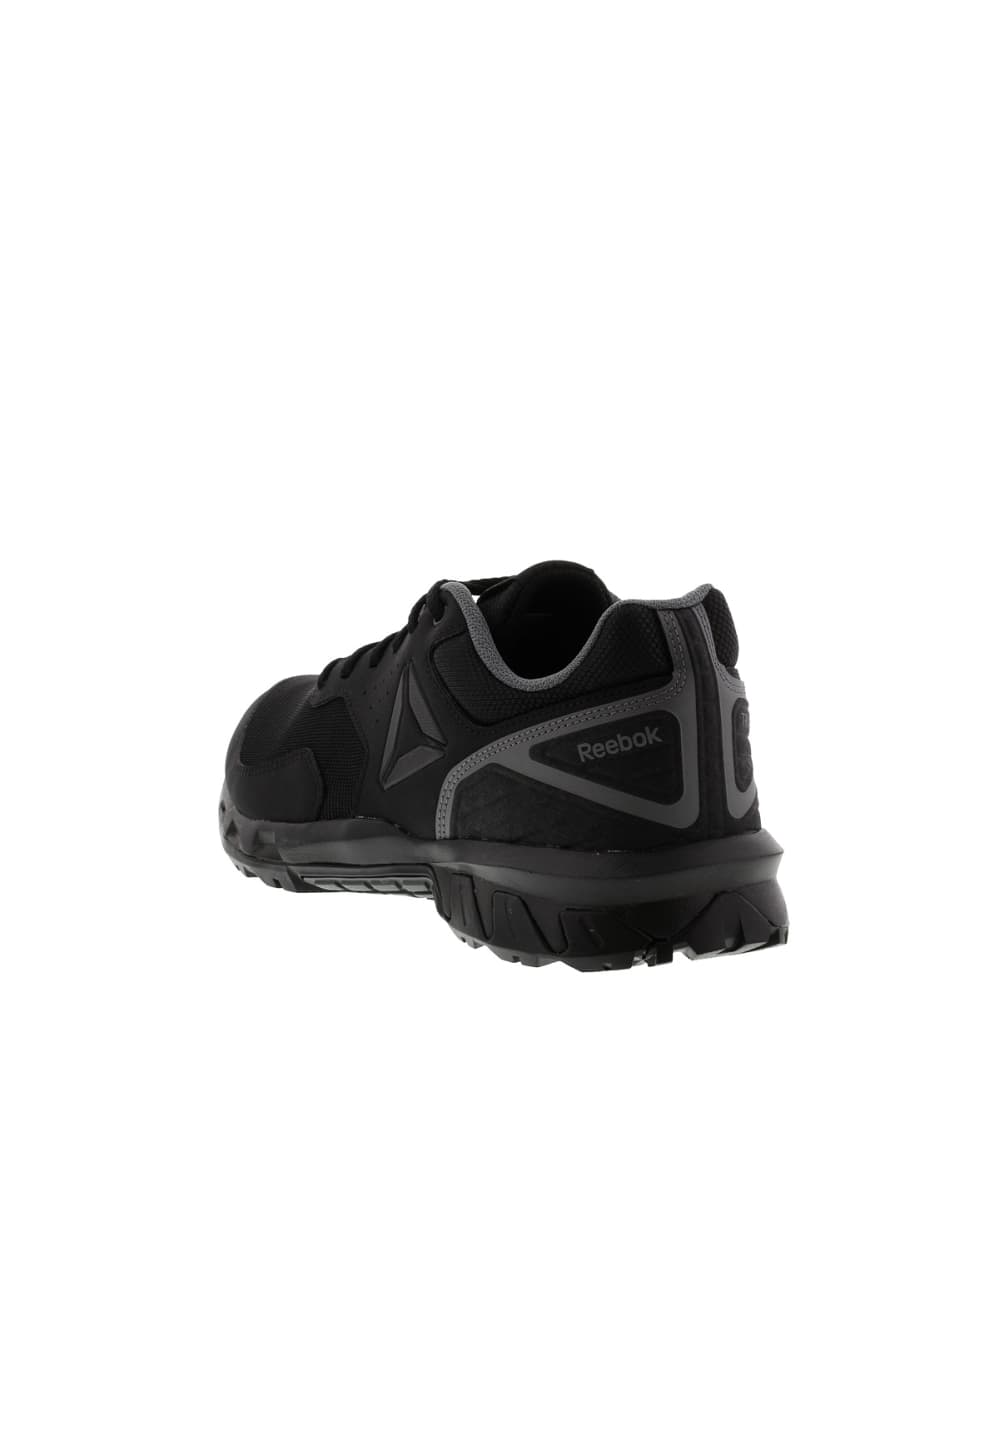 16229ccd03 Reebok Ridgerider Trail 4 - Walking shoes for Men - Black